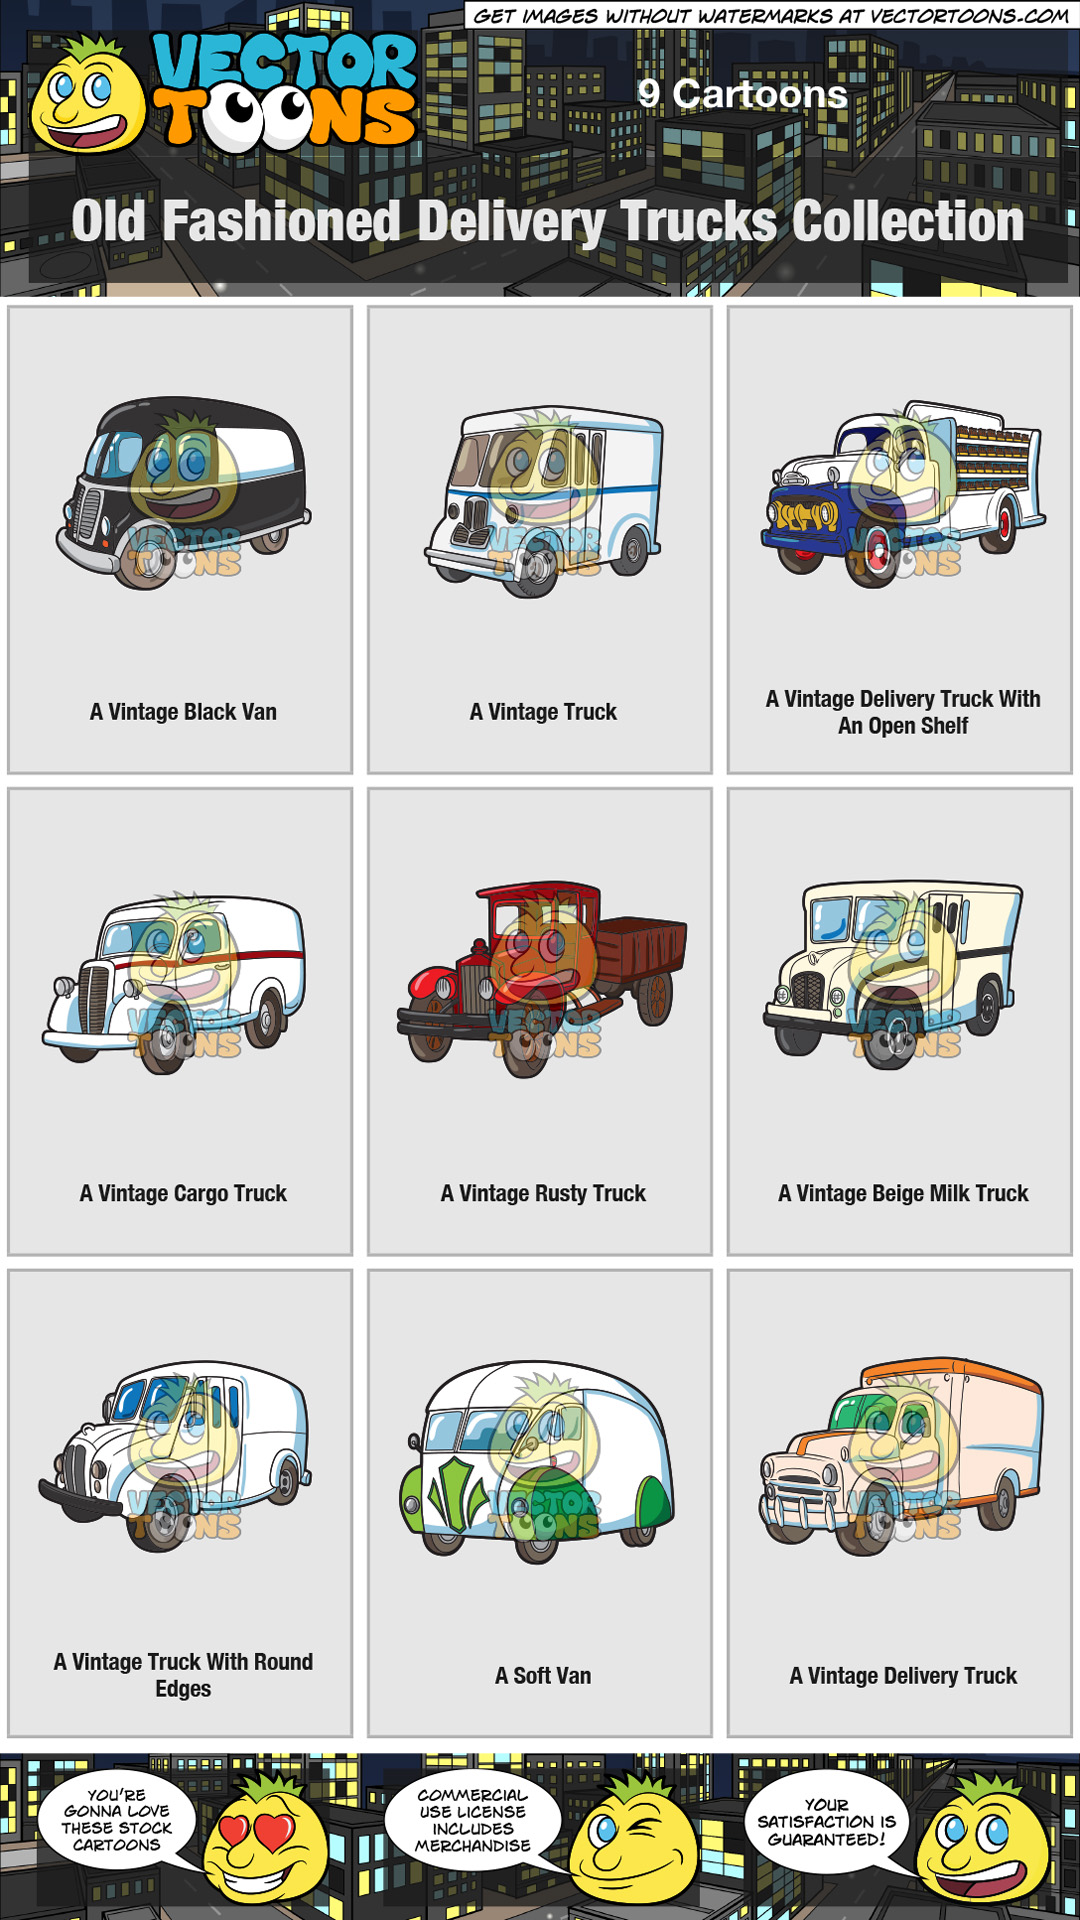 Old Fashioned Delivery Trucks Collection thumbnail